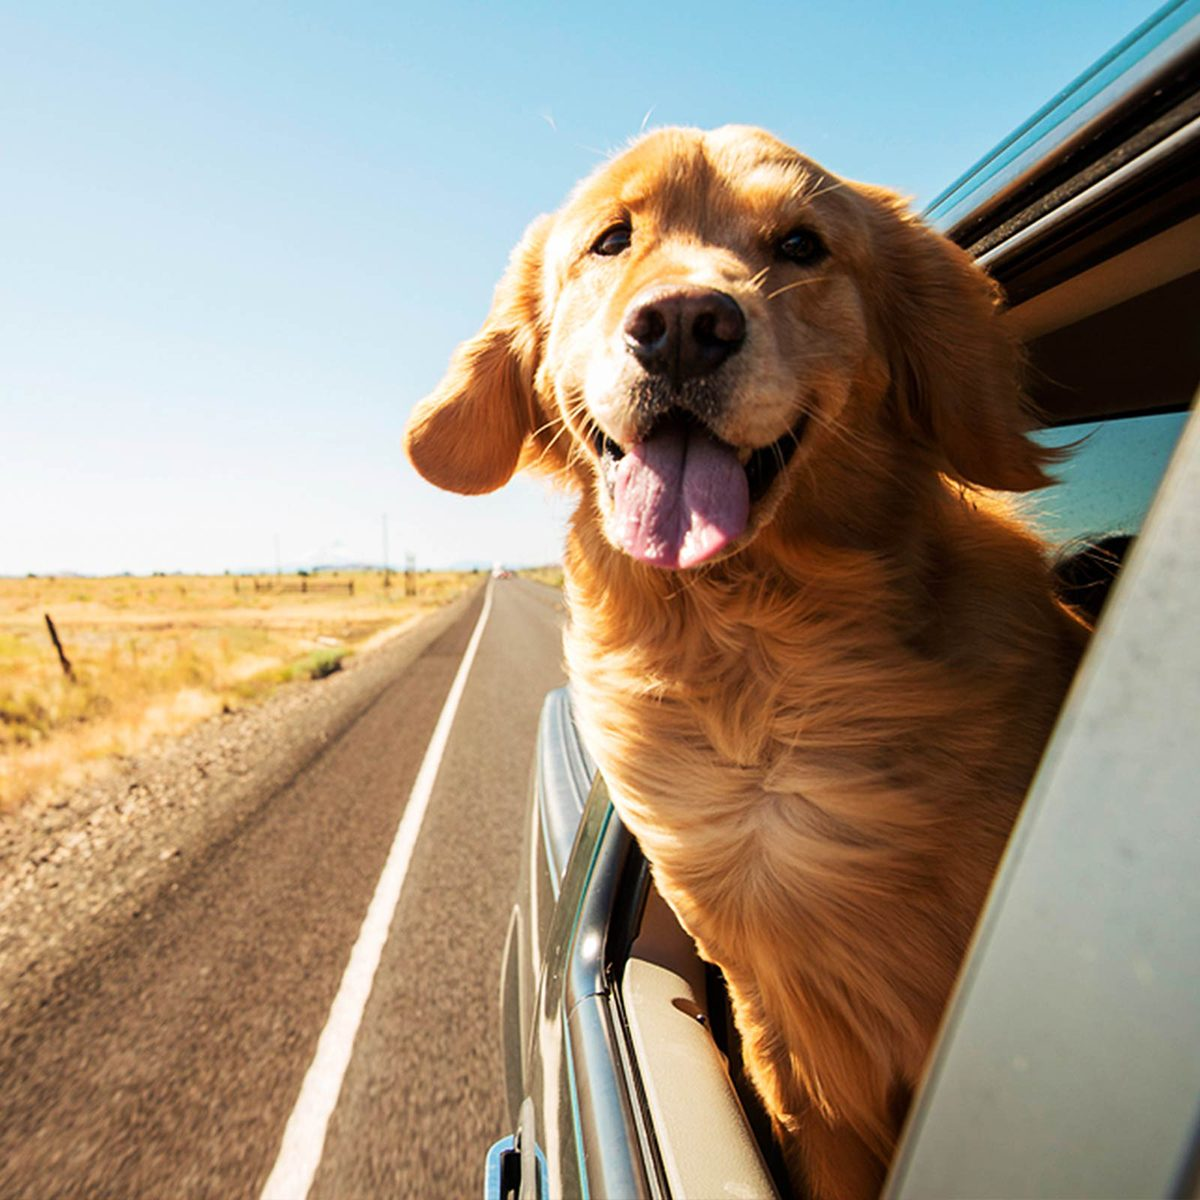 Dog sticking his head out of a car window on country road